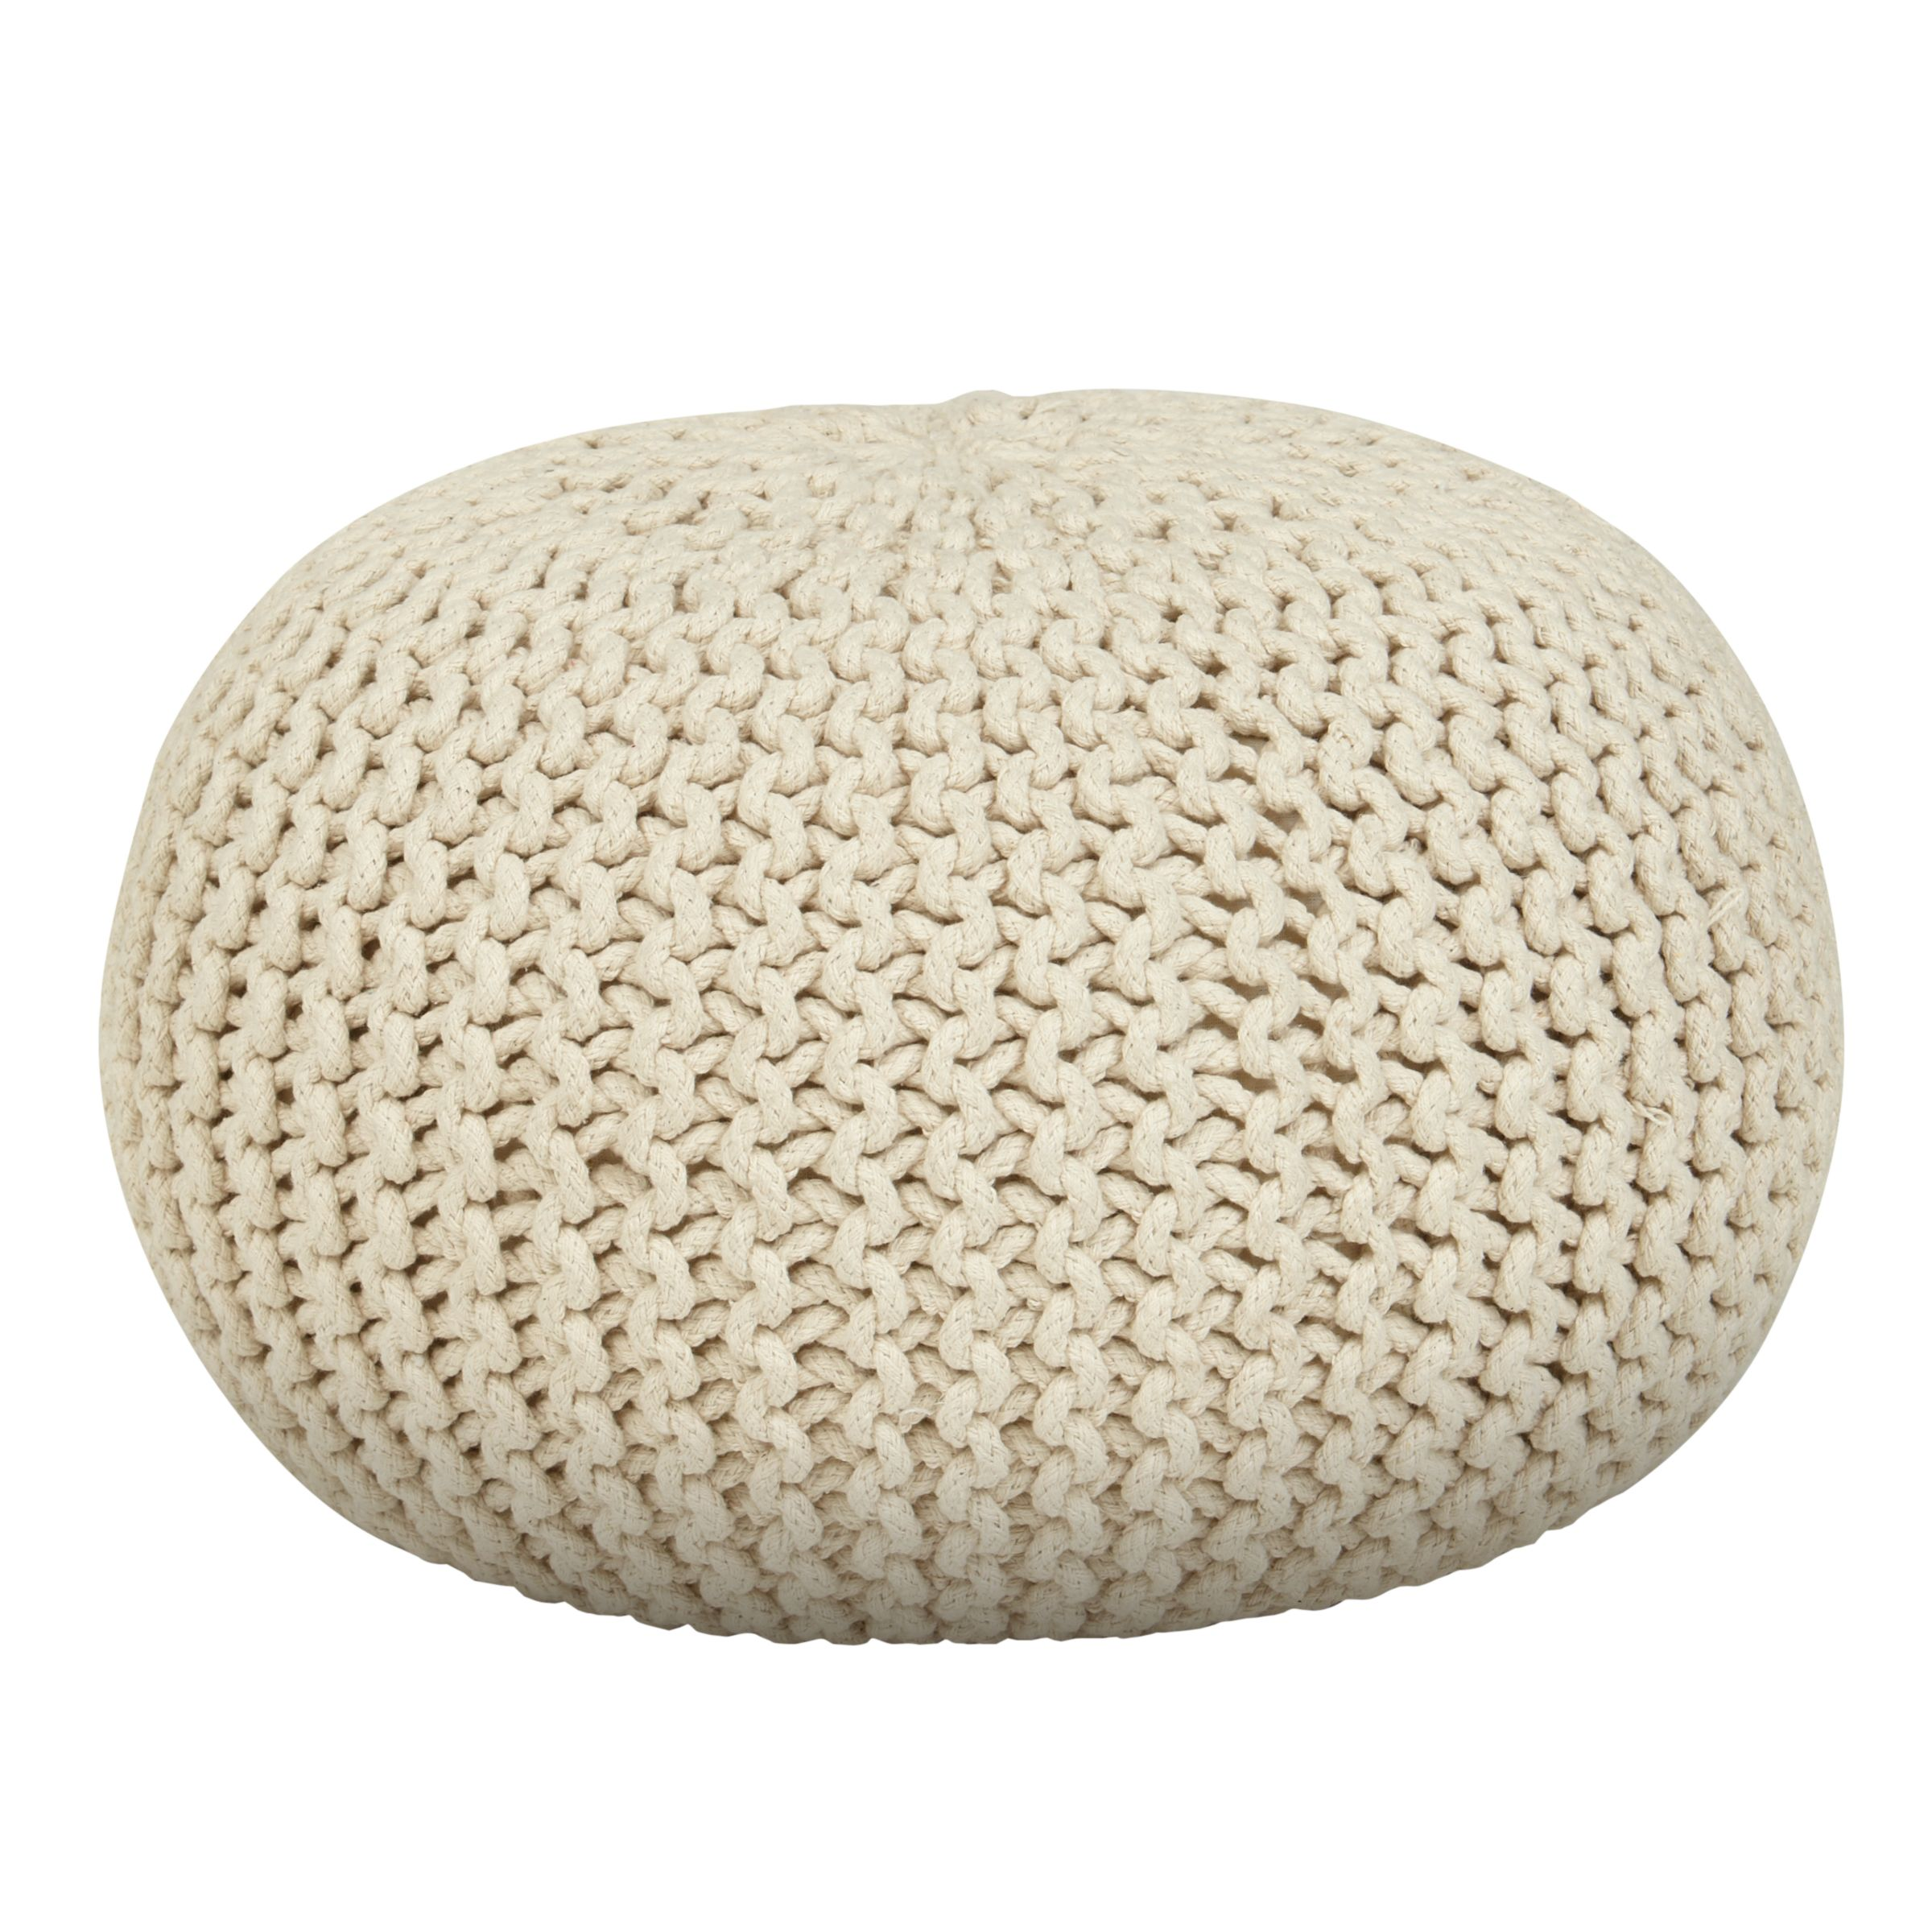 Small round knitted pillow. Craft me Happy!: Small round knitted pillow.